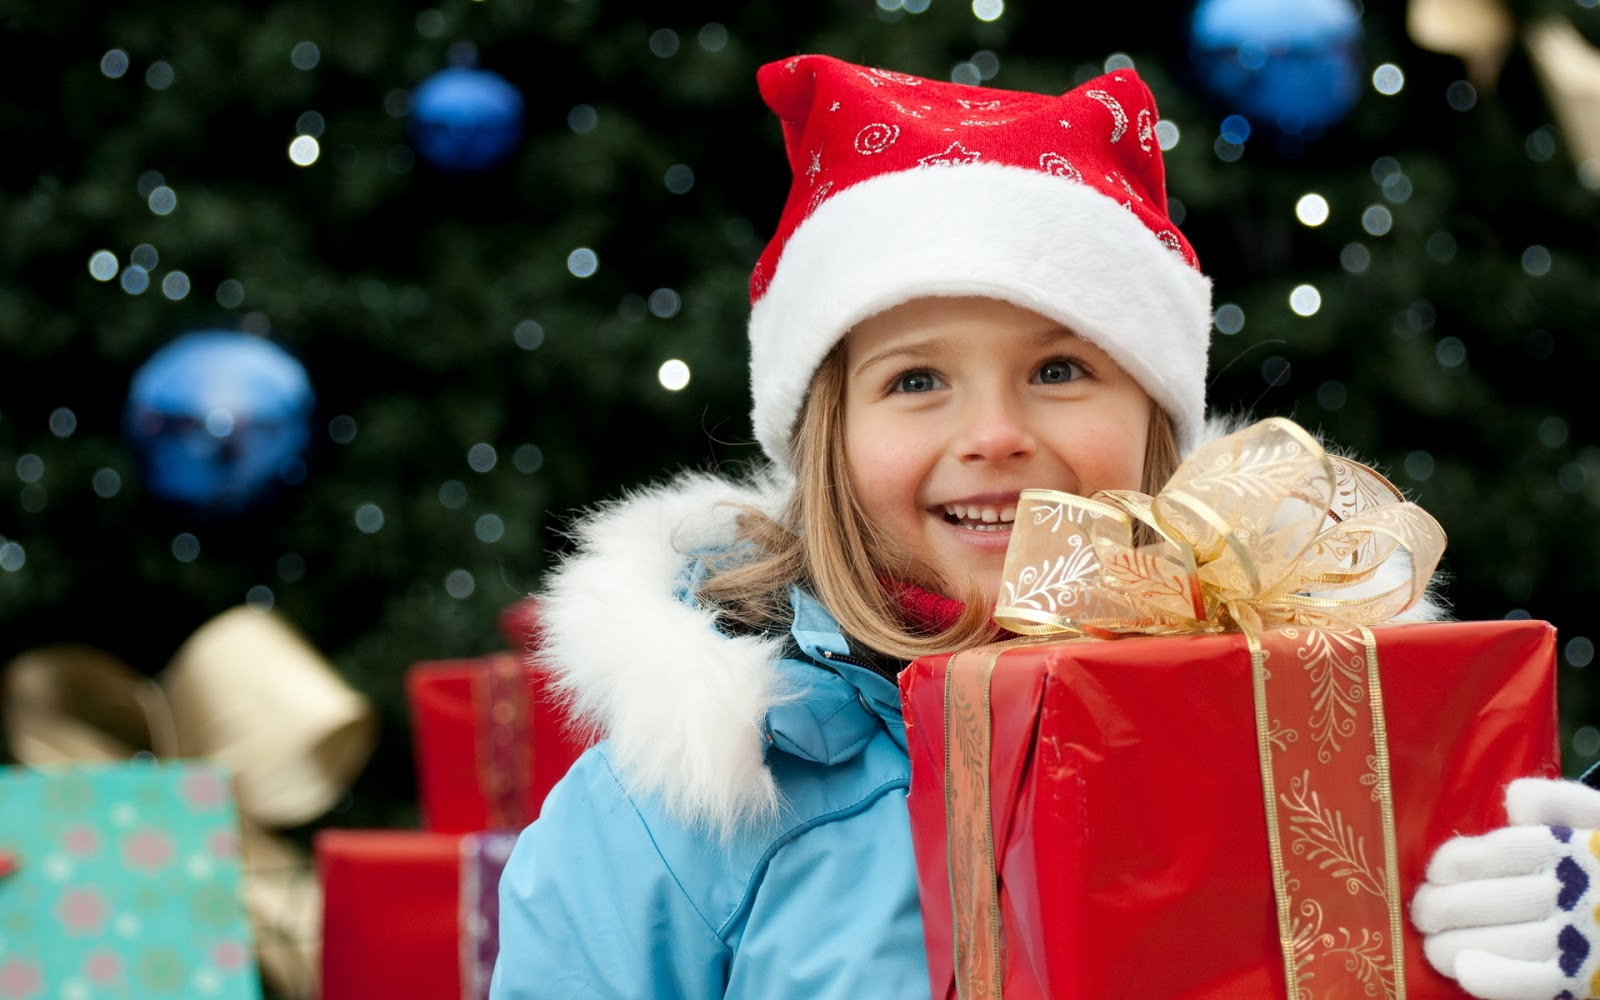 kid smile with christmas gift celebration pictures free downloadjpg - Kids Images Free Download